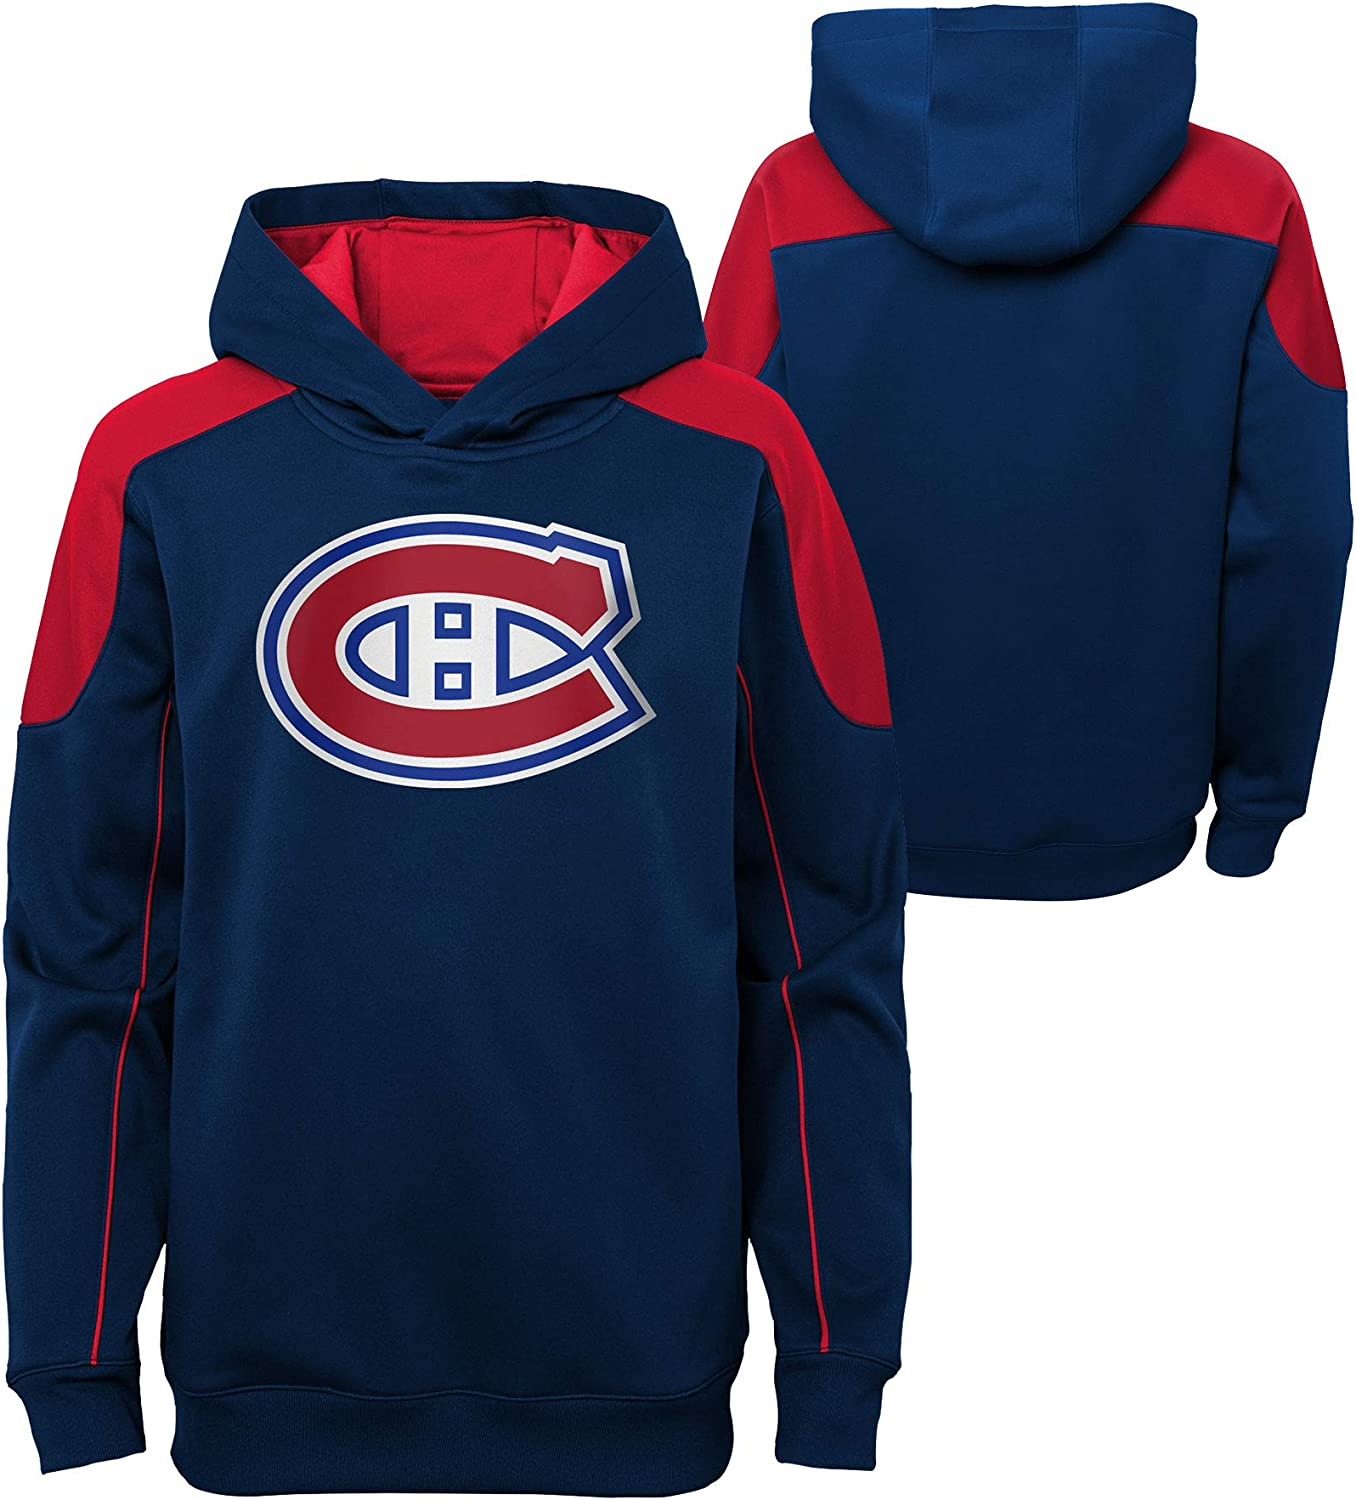 Outerstuff Youth Montreal Canadiens Rocked Performance Pullover Hoodie